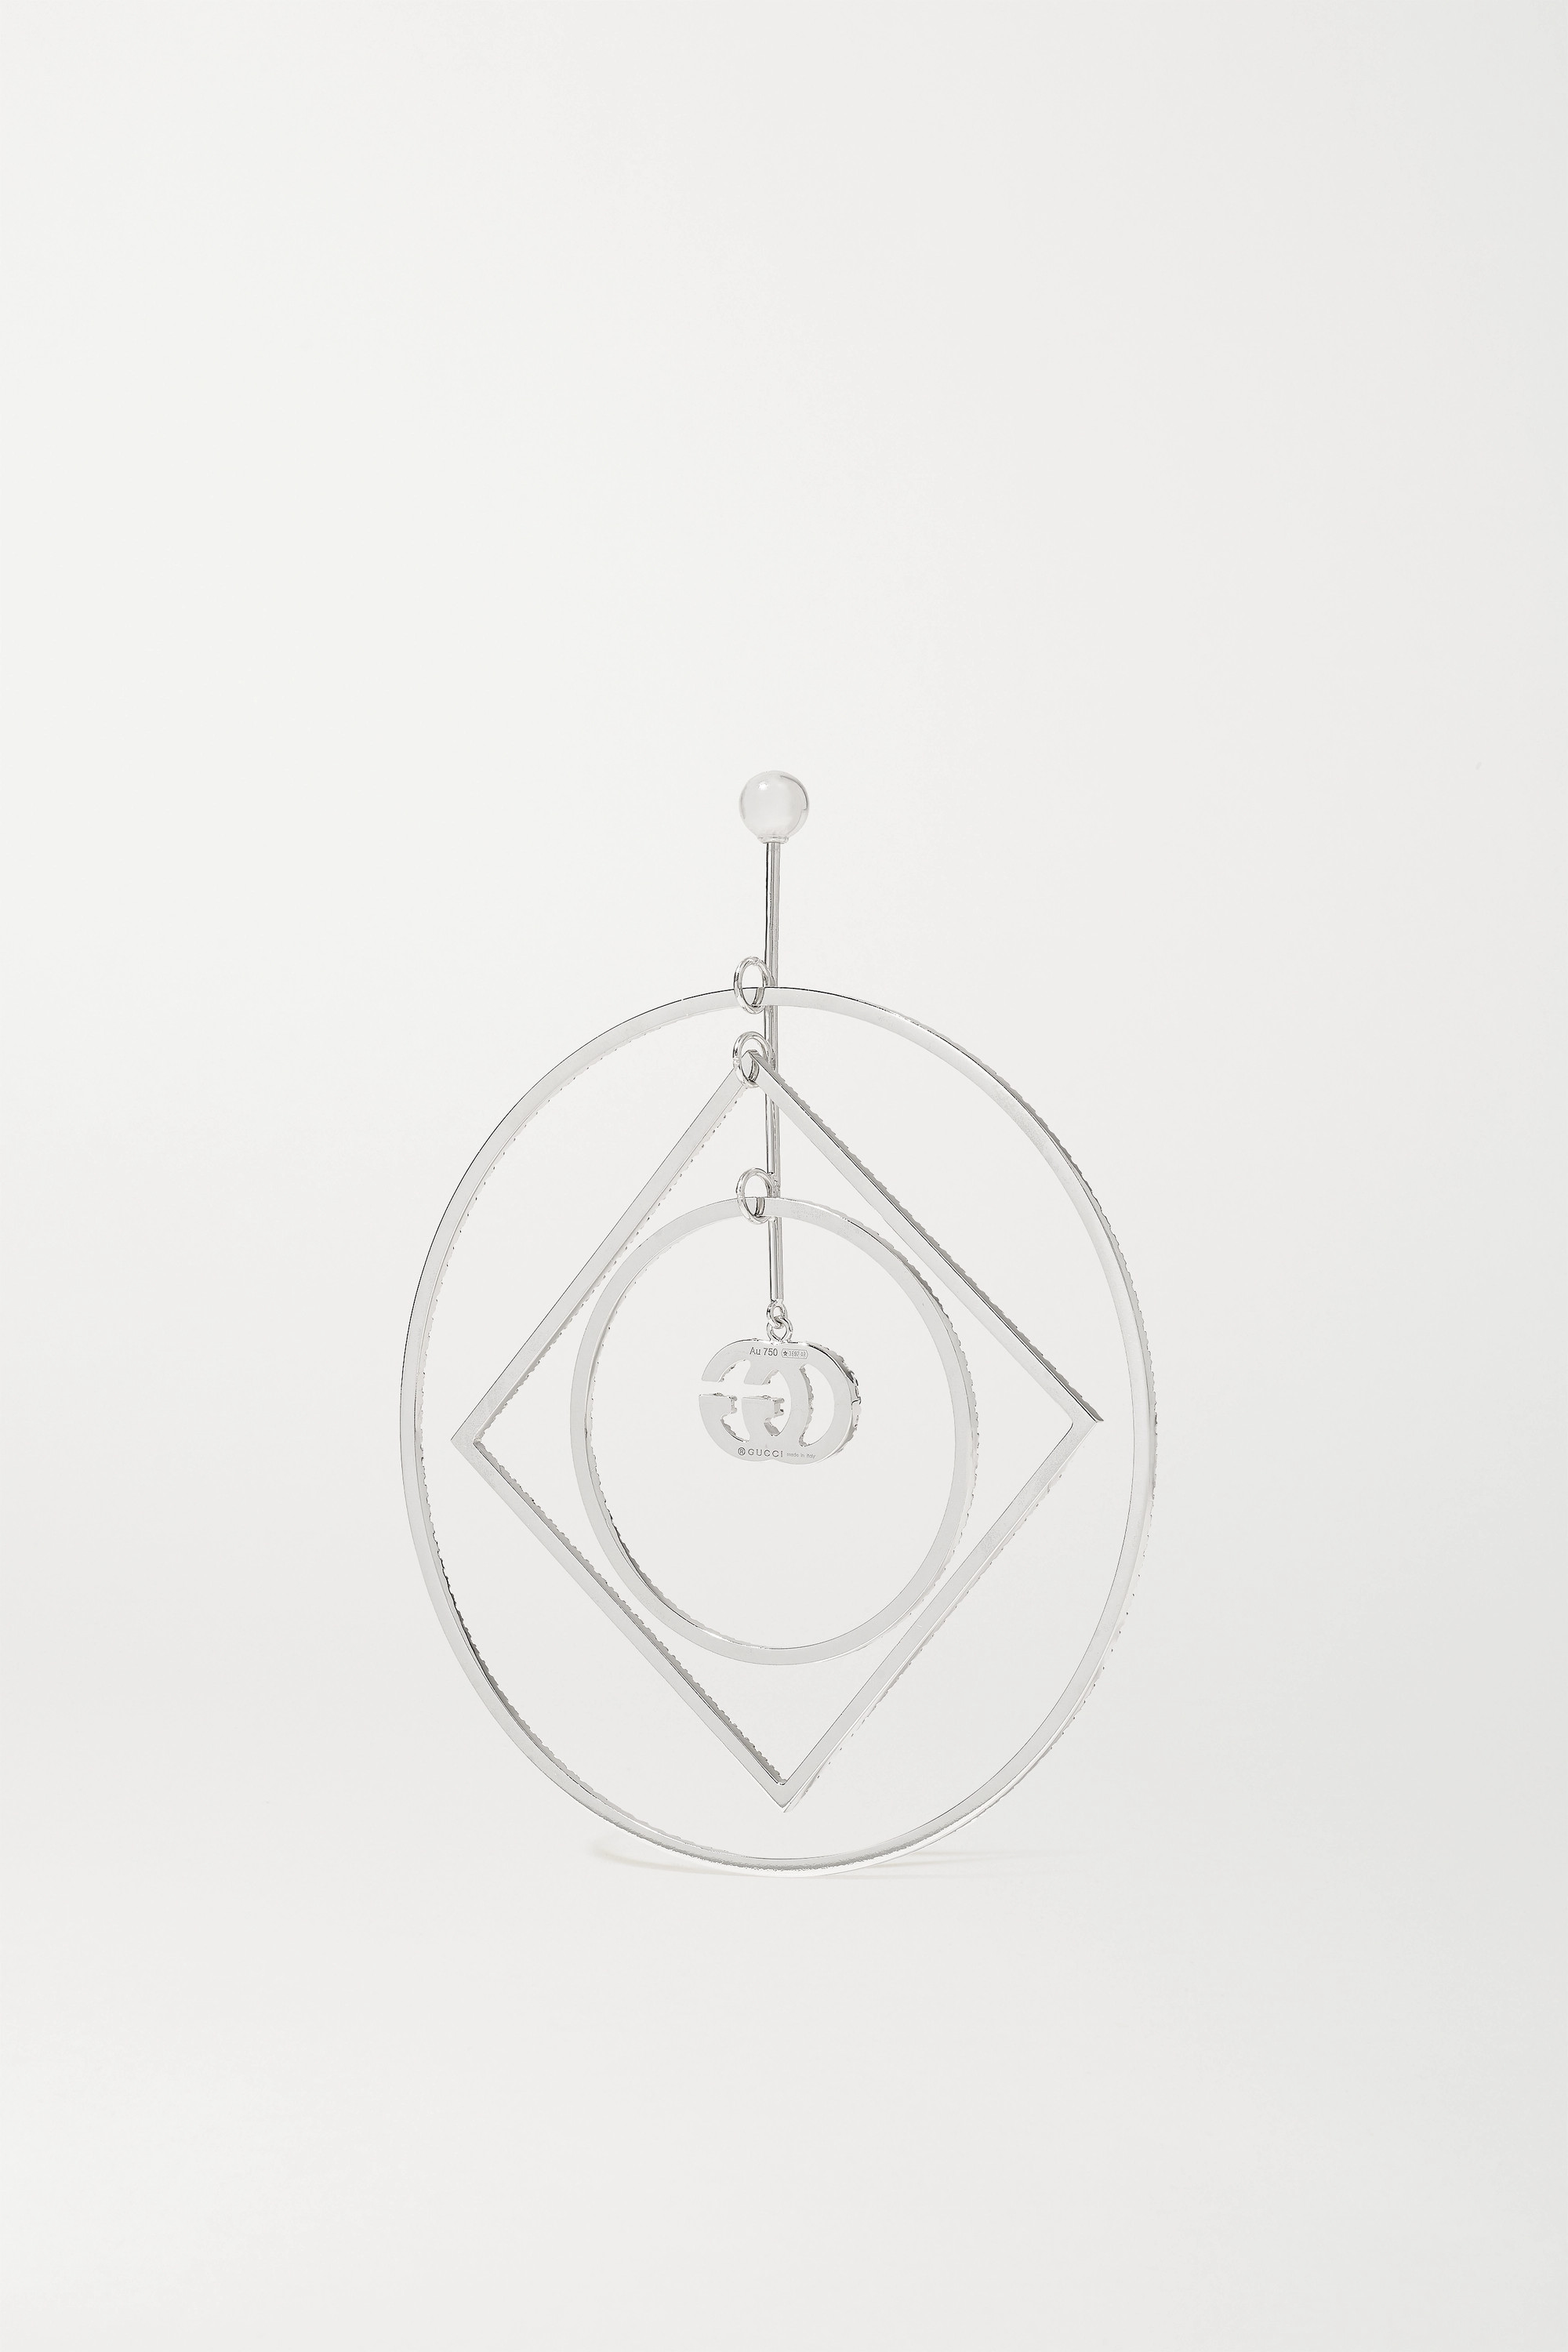 GUCCI GG Running 18-karat white gold diamond earring